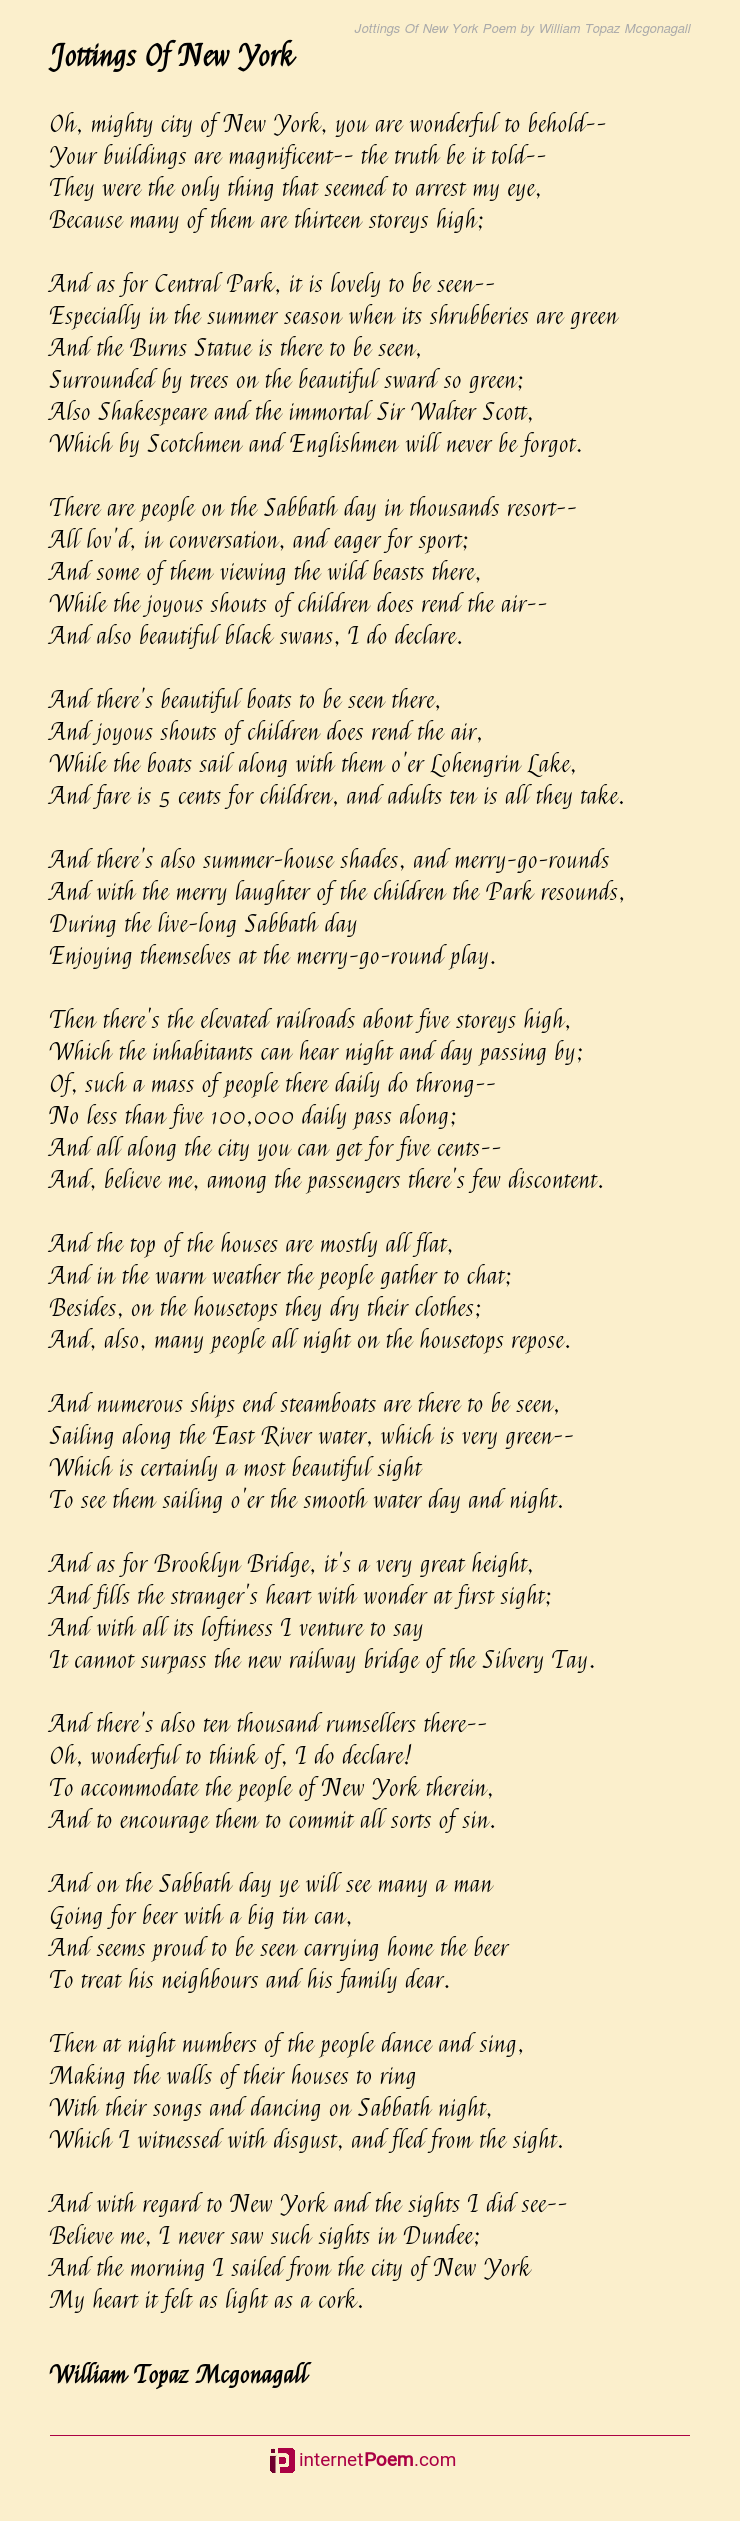 Jottings Of New York Poem By William Topaz Mcgonagall